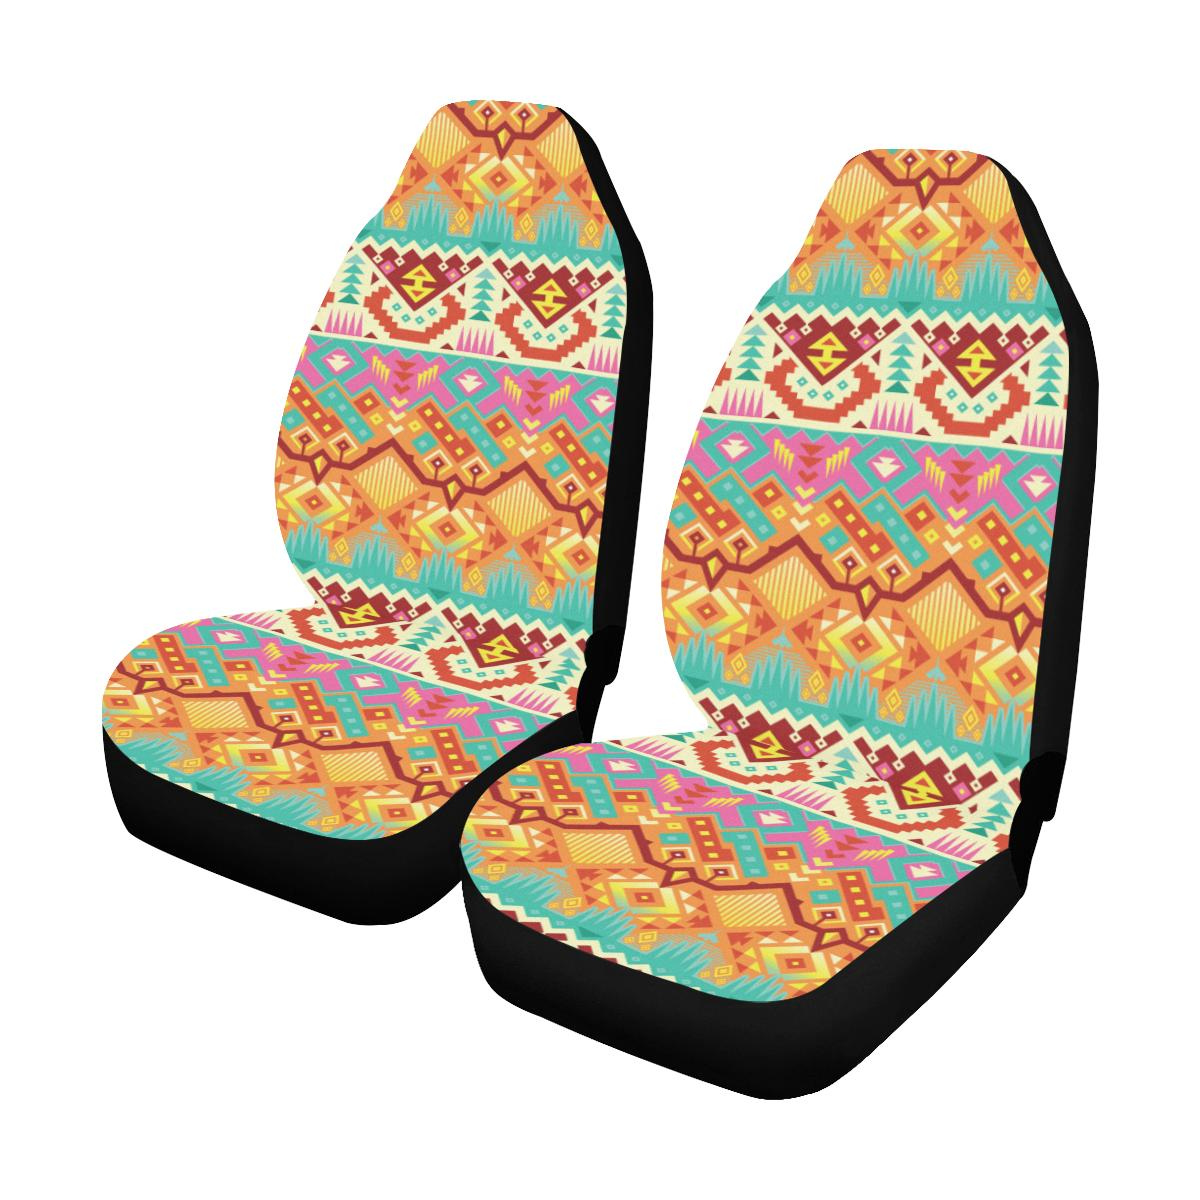 Aztec Pattern Print Design 03 Car Seat Covers (Set of 2)-JORJUNE.COM